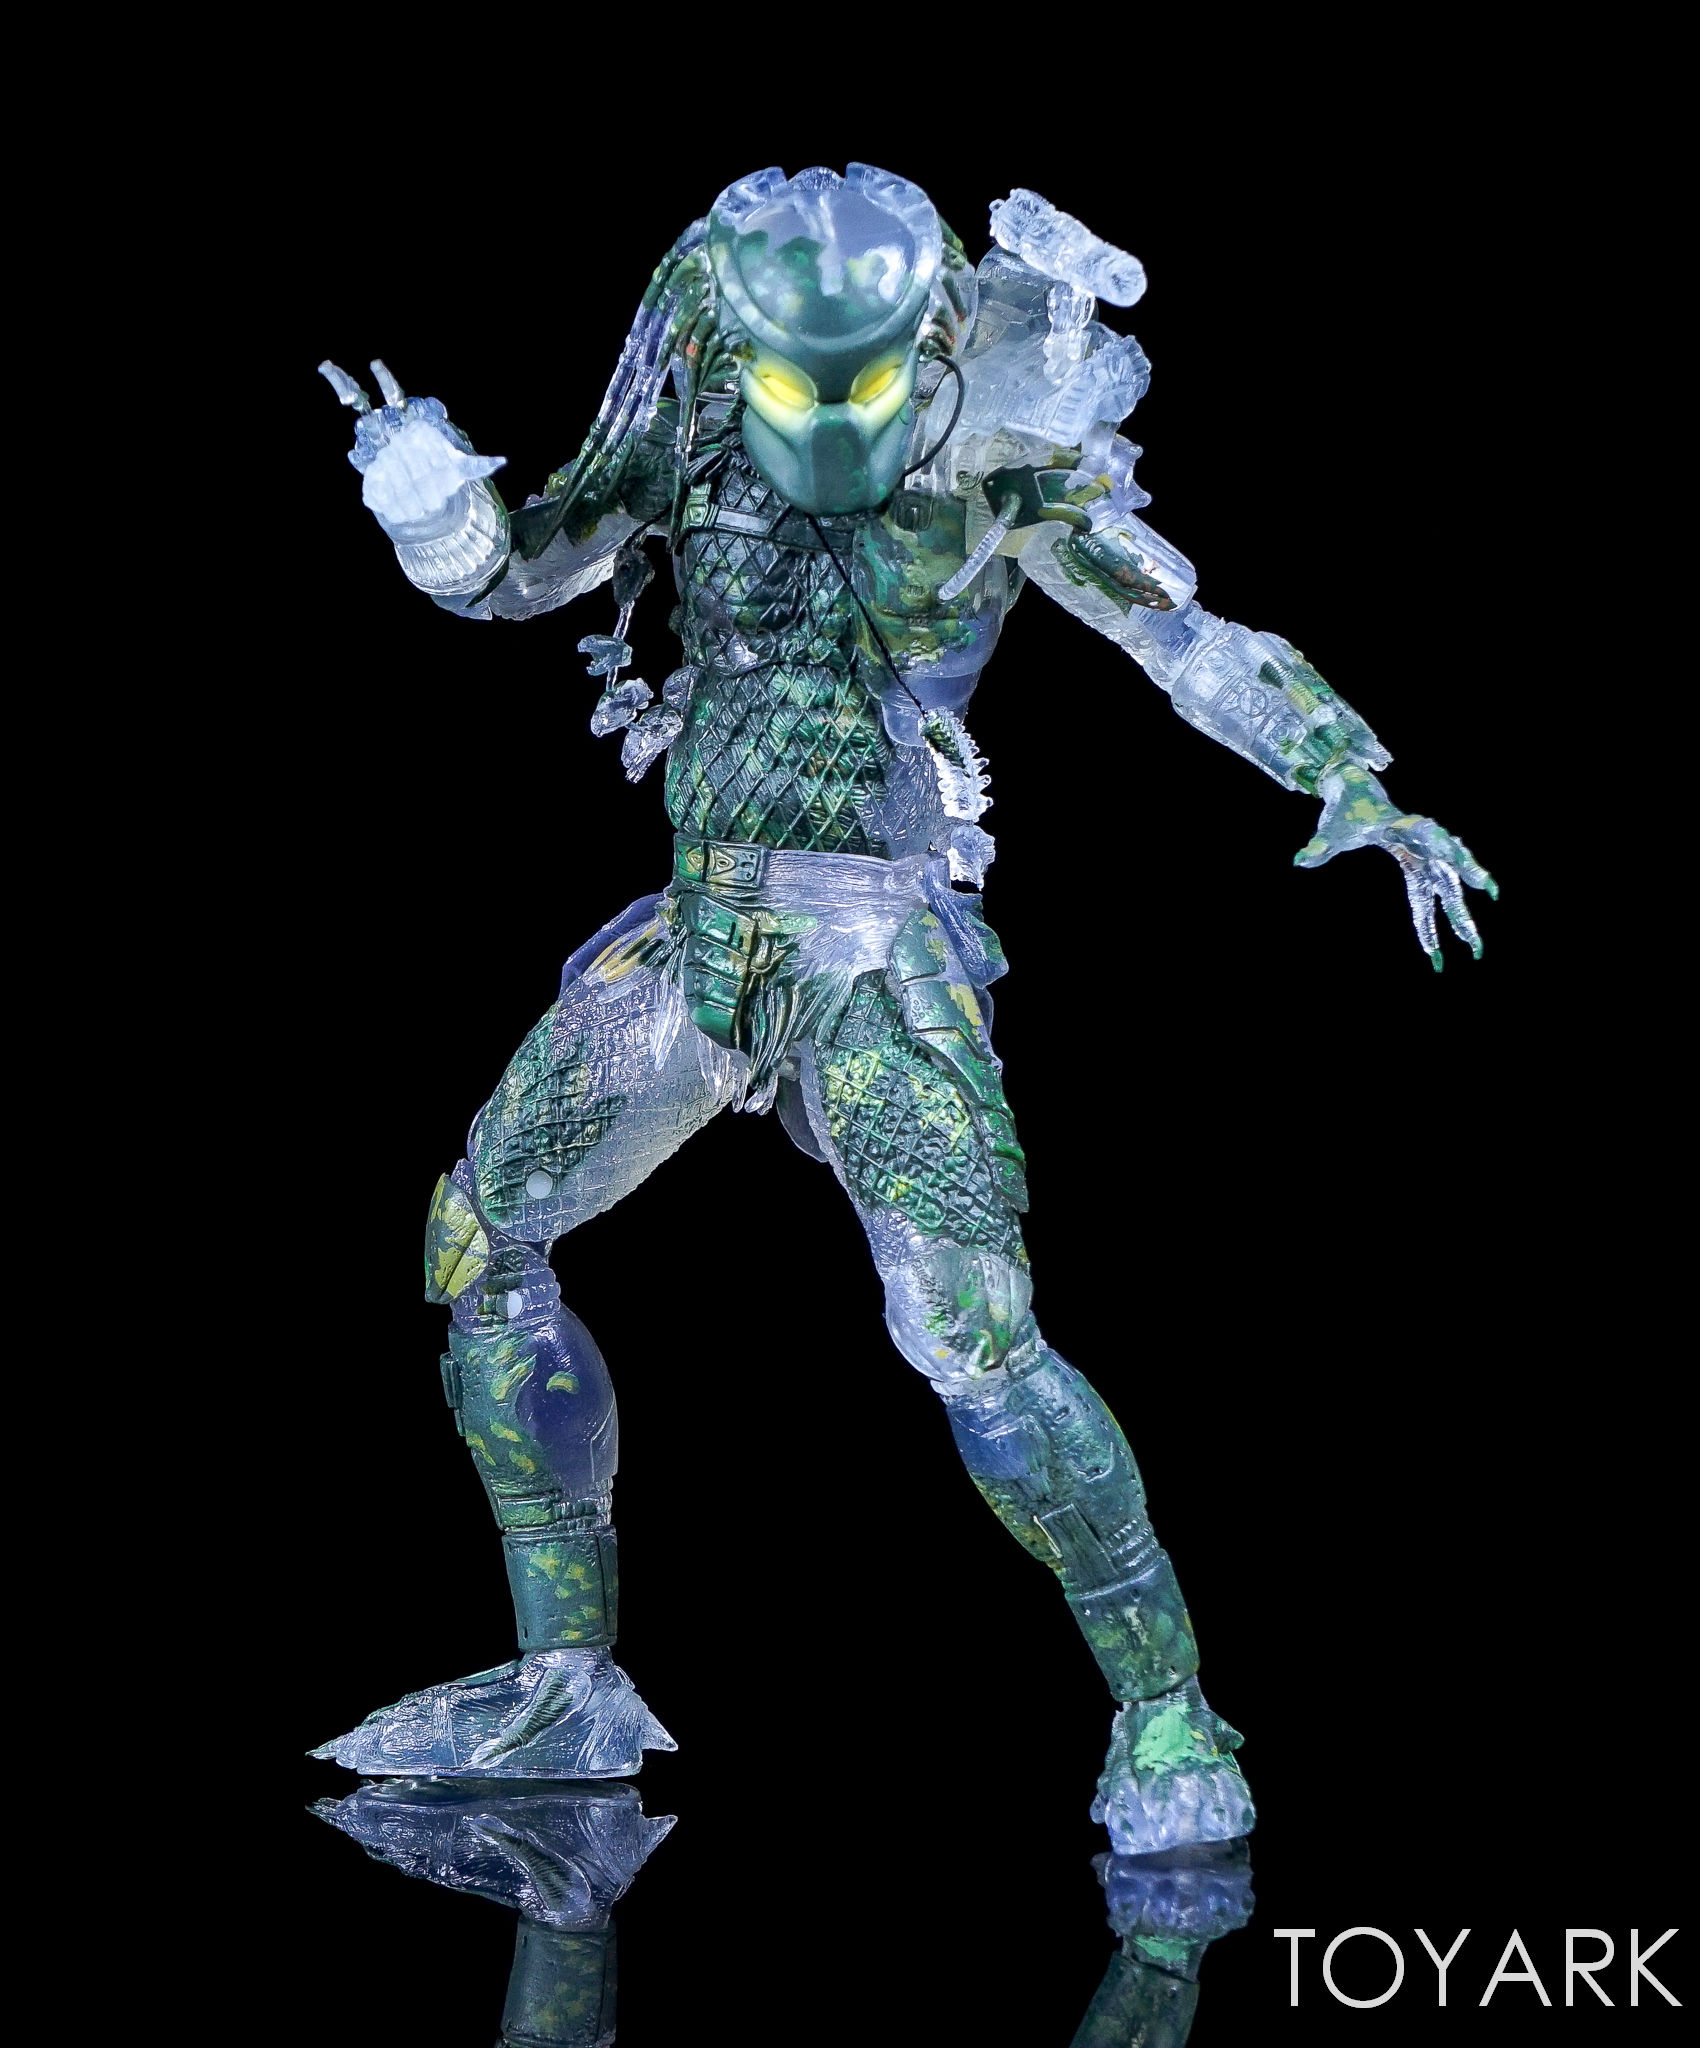 http://news.toyark.com/wp-content/uploads/sites/4/2017/03/NECA-Jungle-Demon-Predator-013.jpg